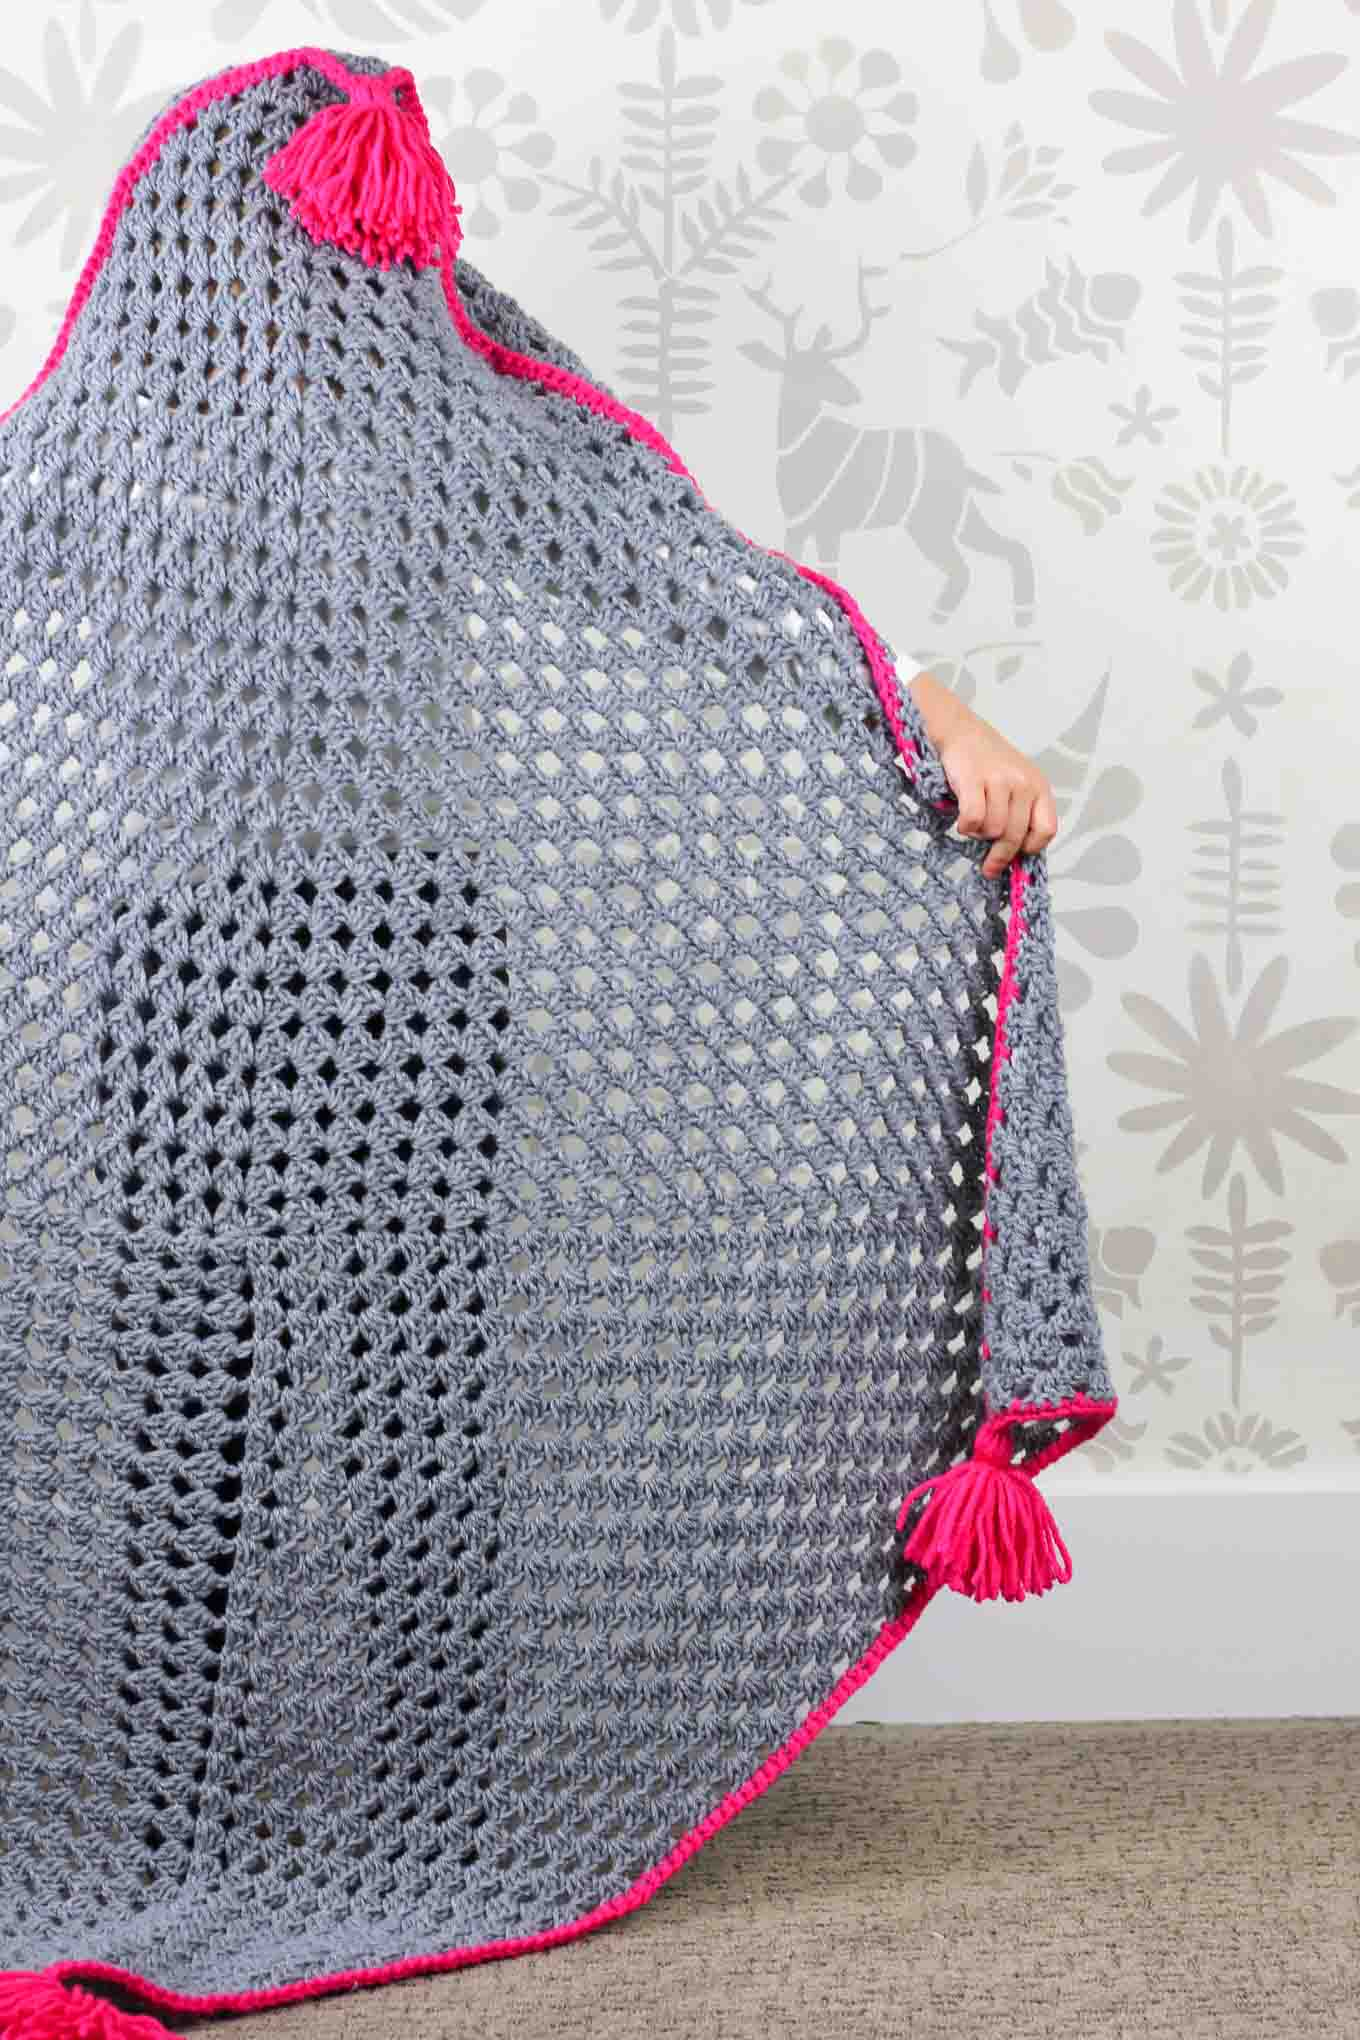 "Based on a large granny square, the ""Granny Gives Back"" crochet hooded blanket pattern makes an easy and inexpensive project to donate to children's charities. The oversized hood and playful tassels will give any kid a safe, warm place to escape to. Click for the free granny square afghan pattern using Lion Brand Pound of Love yarn!"